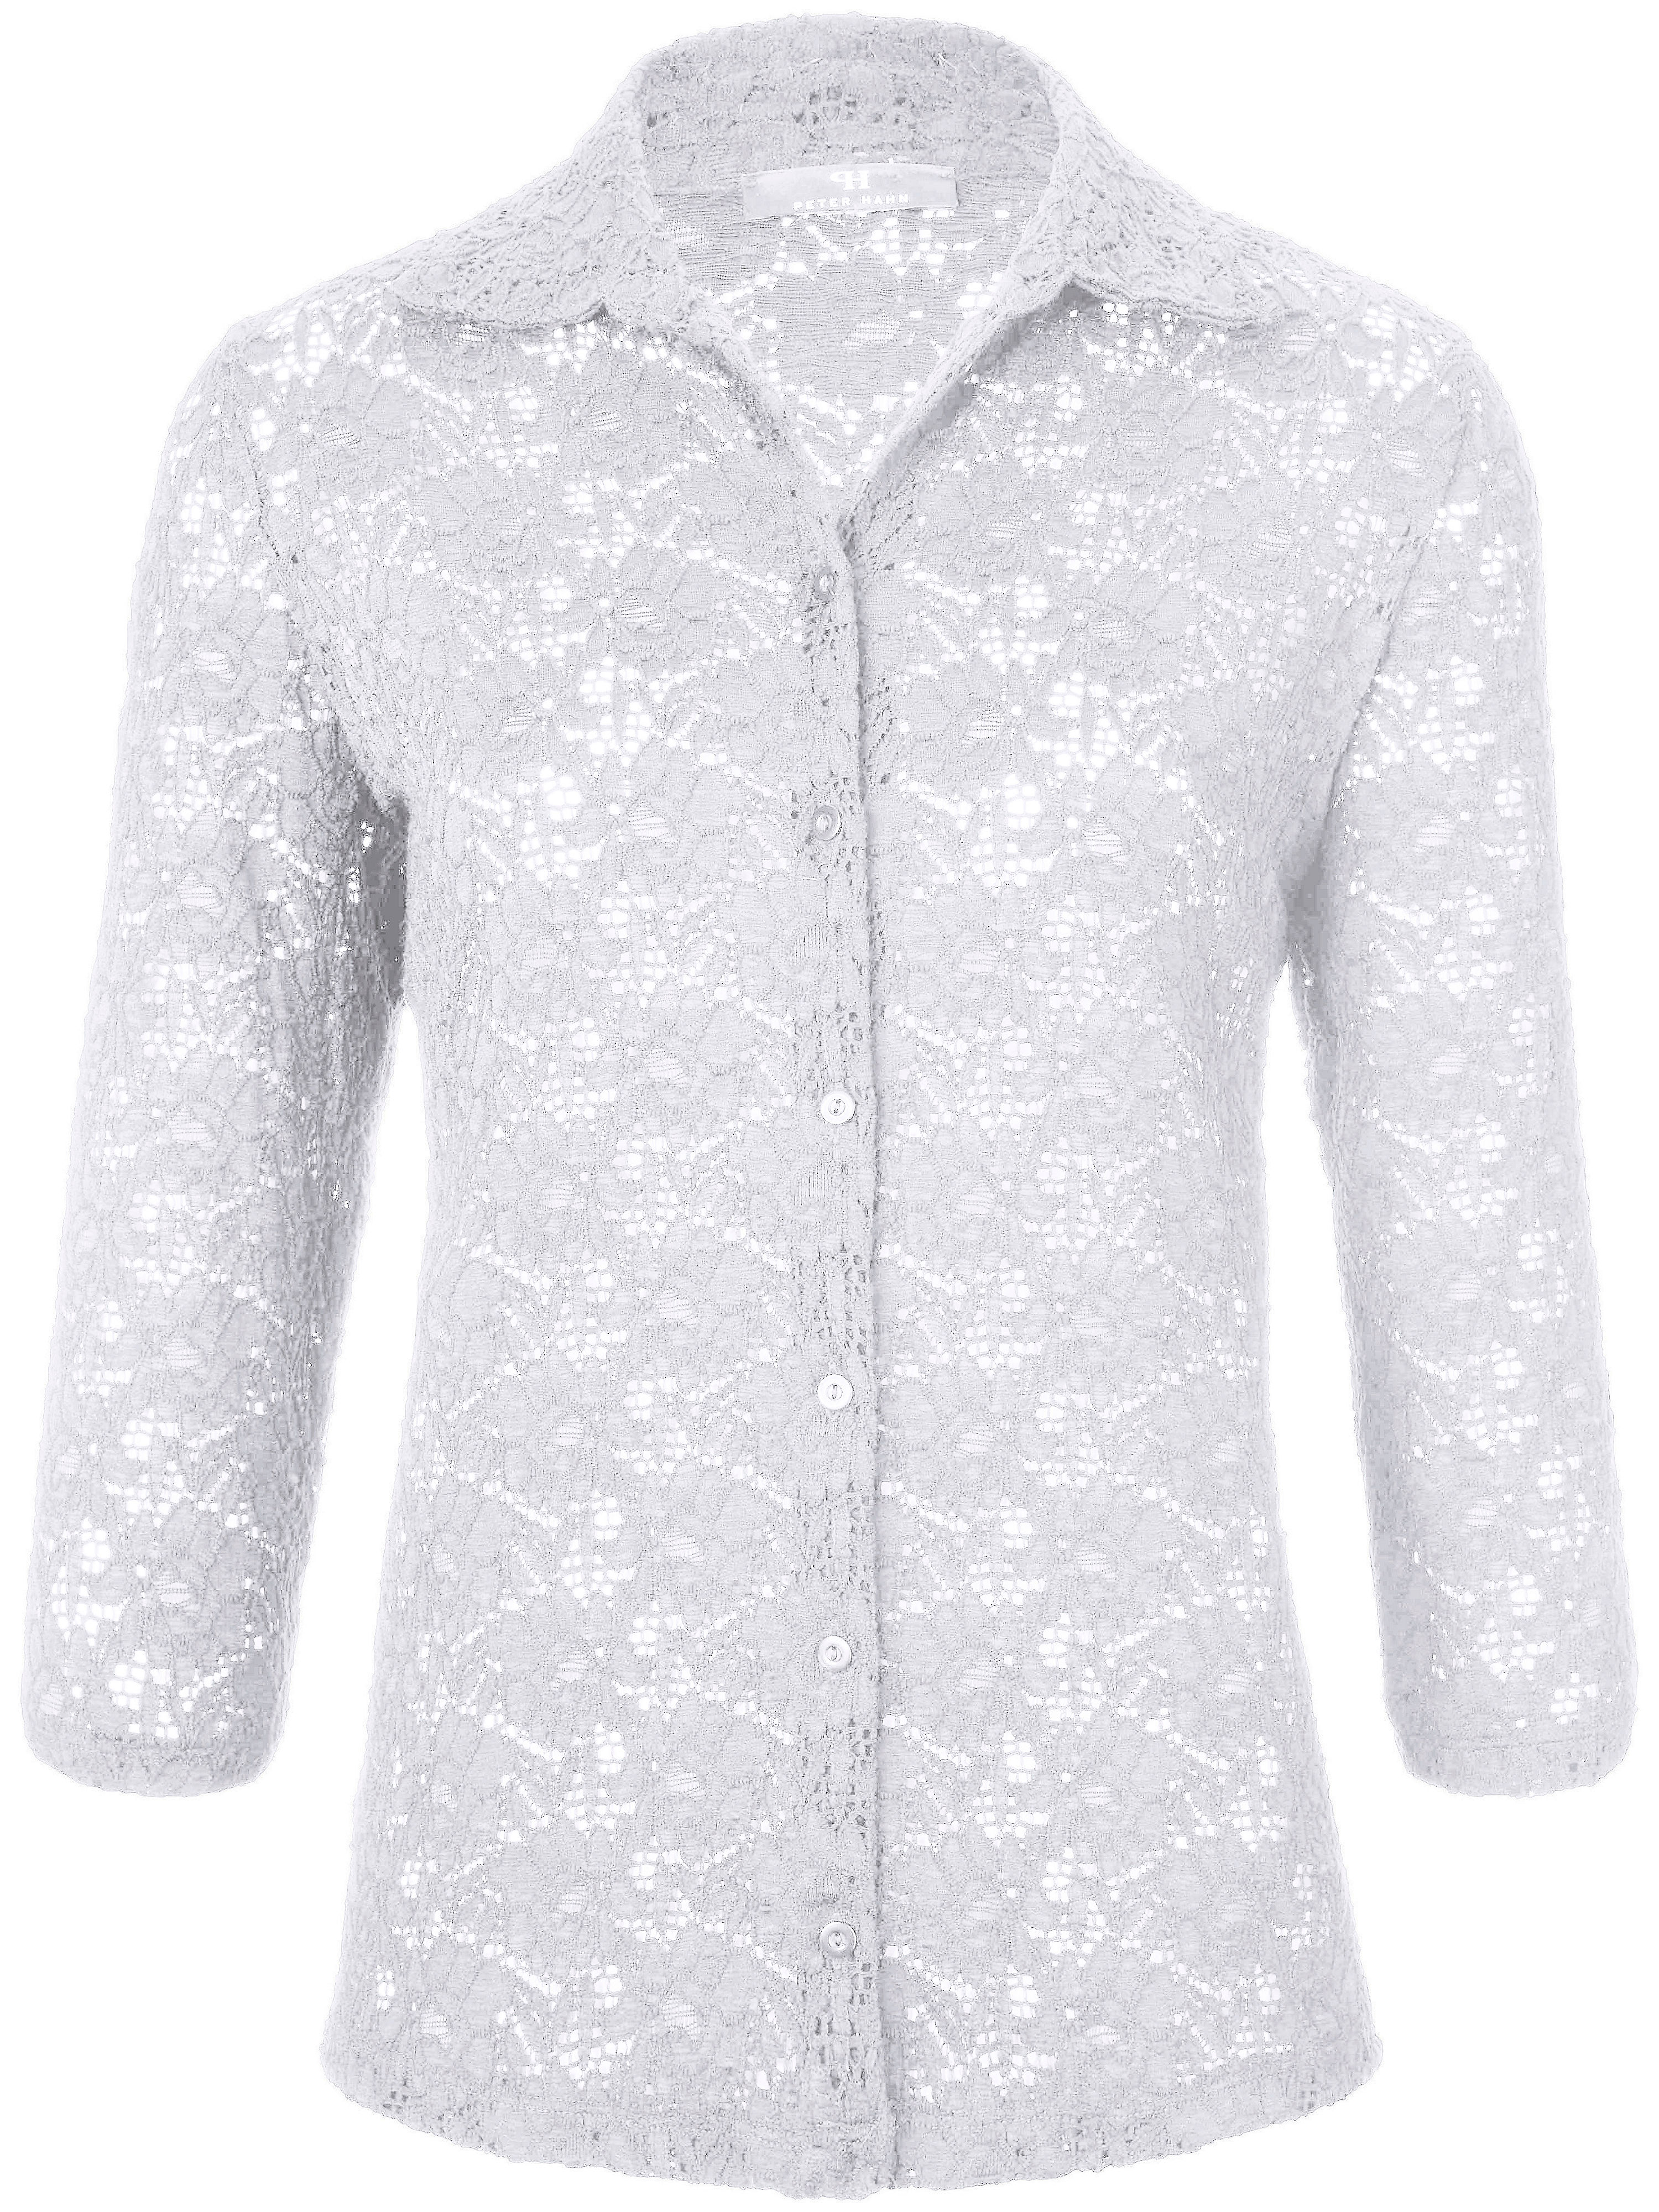 Le chemisier Peter Hahn blanc taille 40